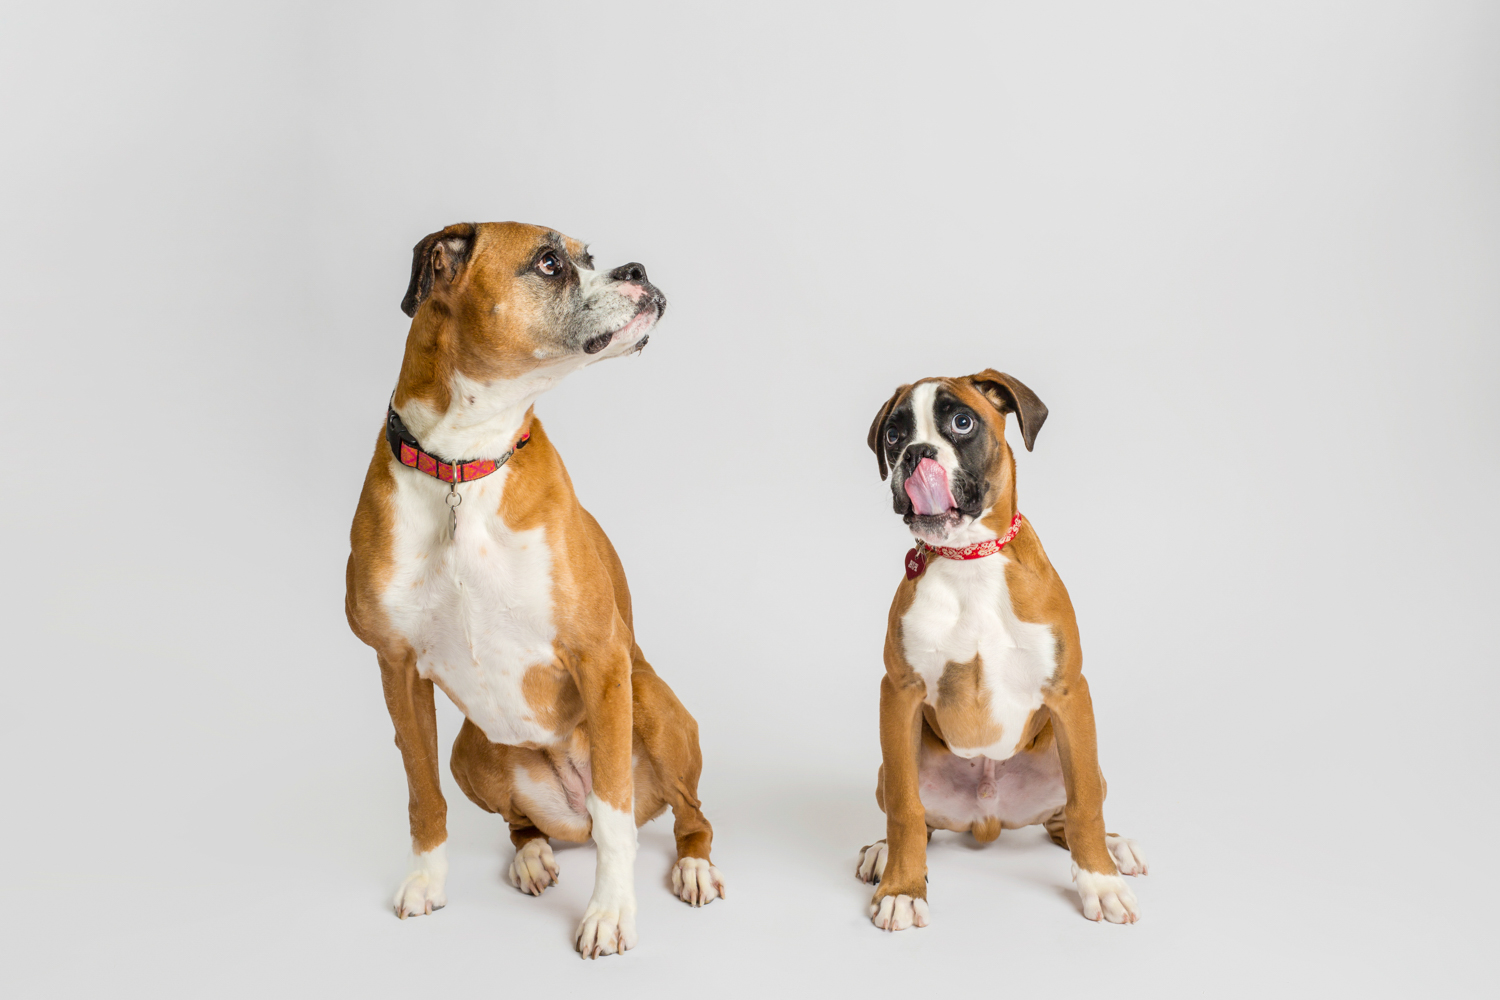 pet-siblings-white-backdrop.jpg